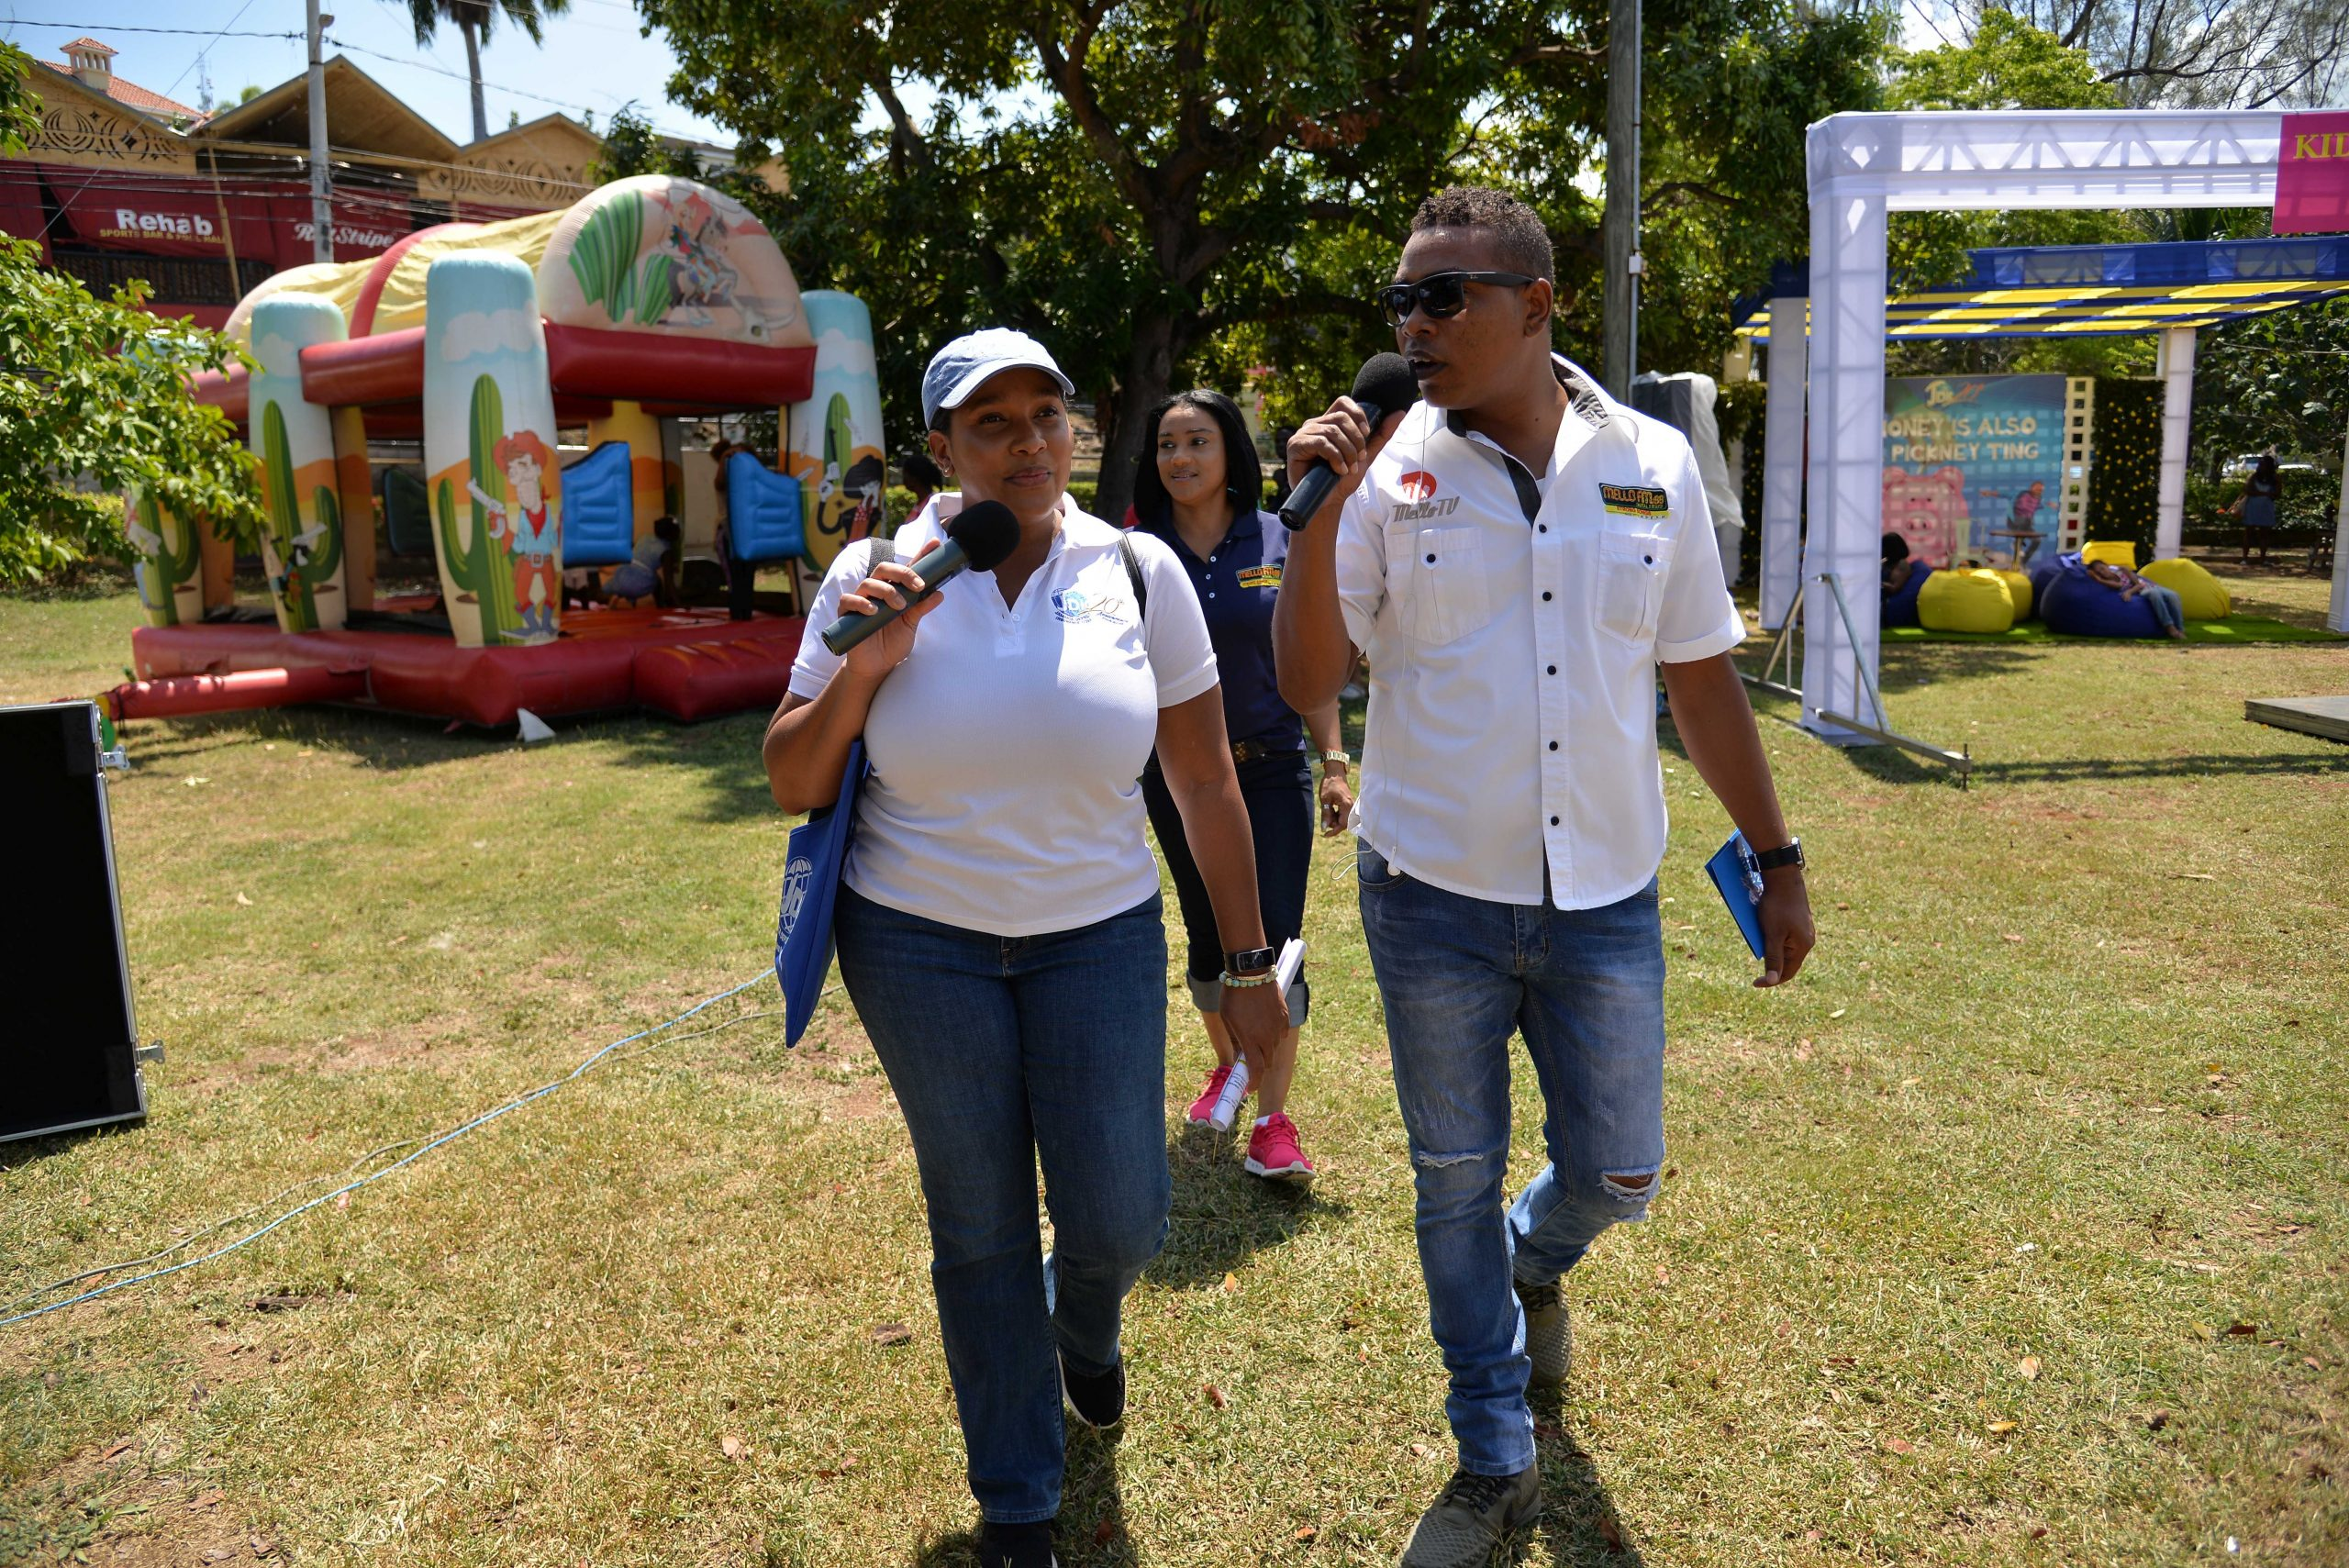 JDIC's Corporate Communications Officer, Kadisha Sharp and Mello Day Break host Ron Muschette taking listeners on a tour of the ground to highlight the activities scheduled throughout the Financial Fair and Public Forum.